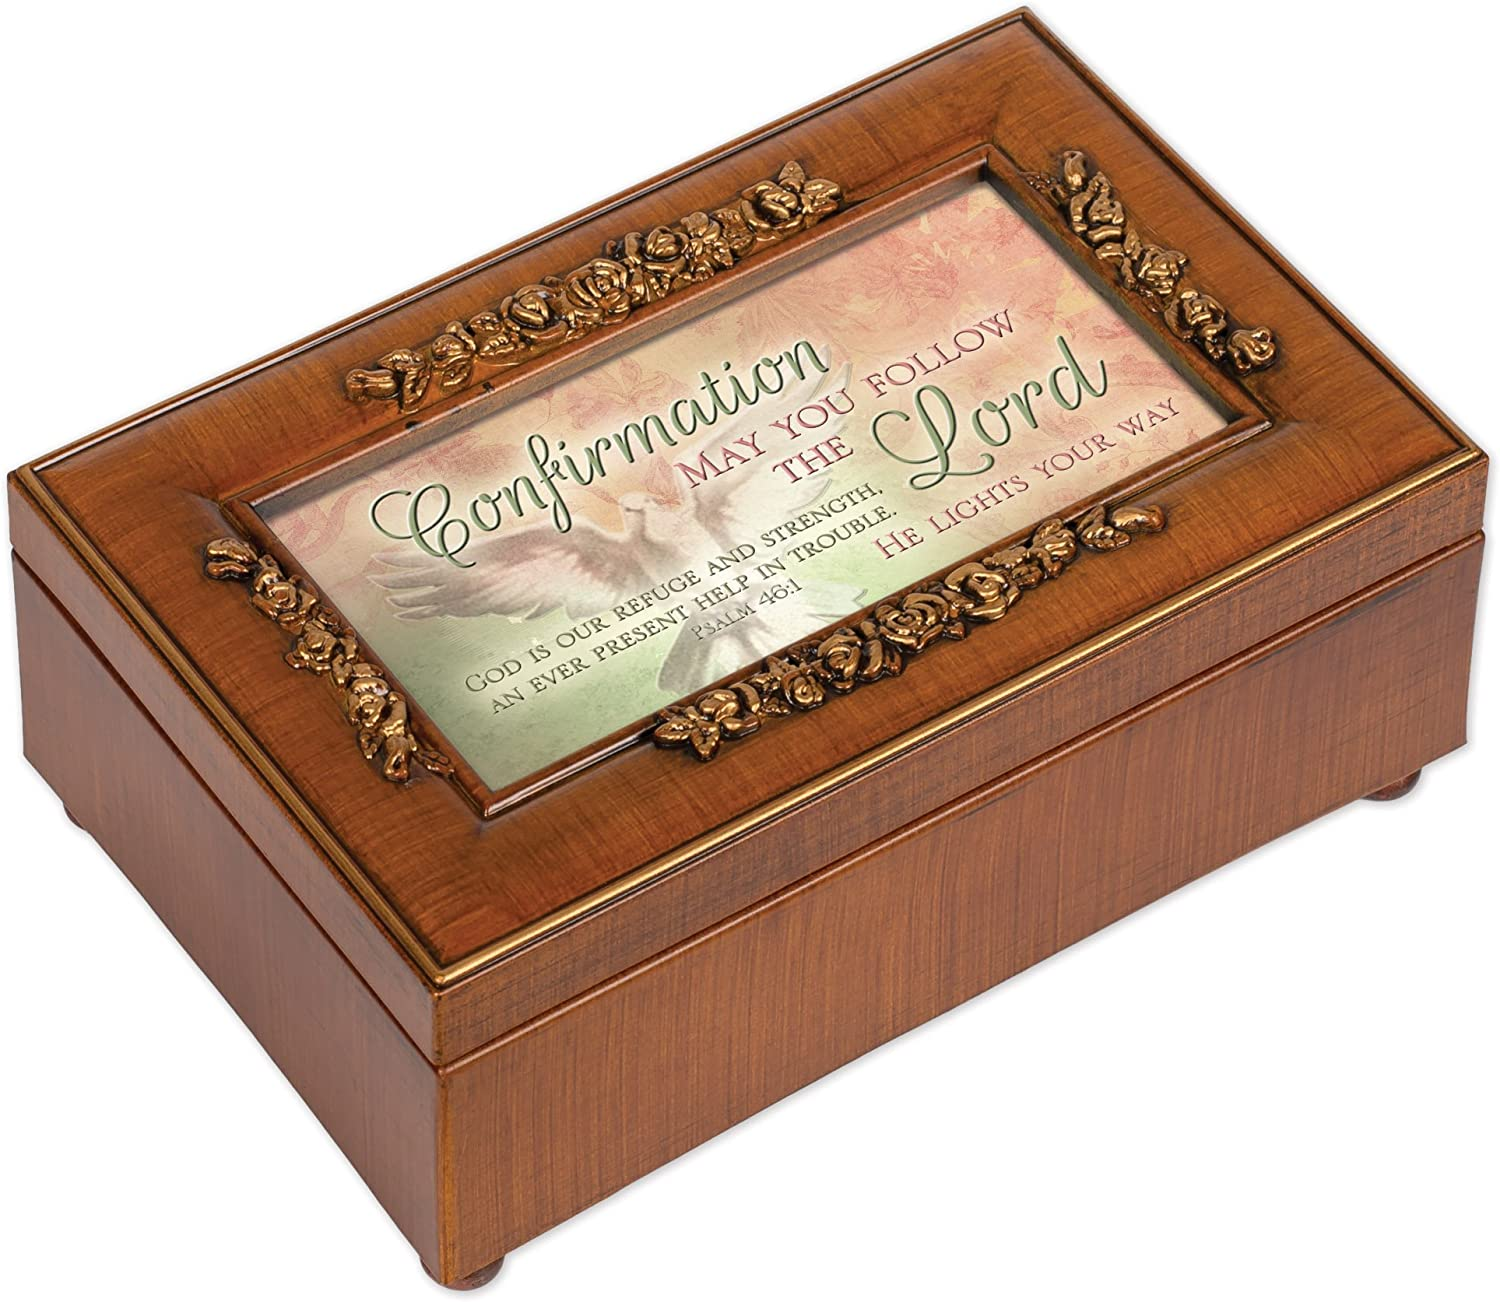 Cottage Garden Confirmation Follow The Lord Woodgrain Embossed Jewelry Music Box Plays Amazing Grace